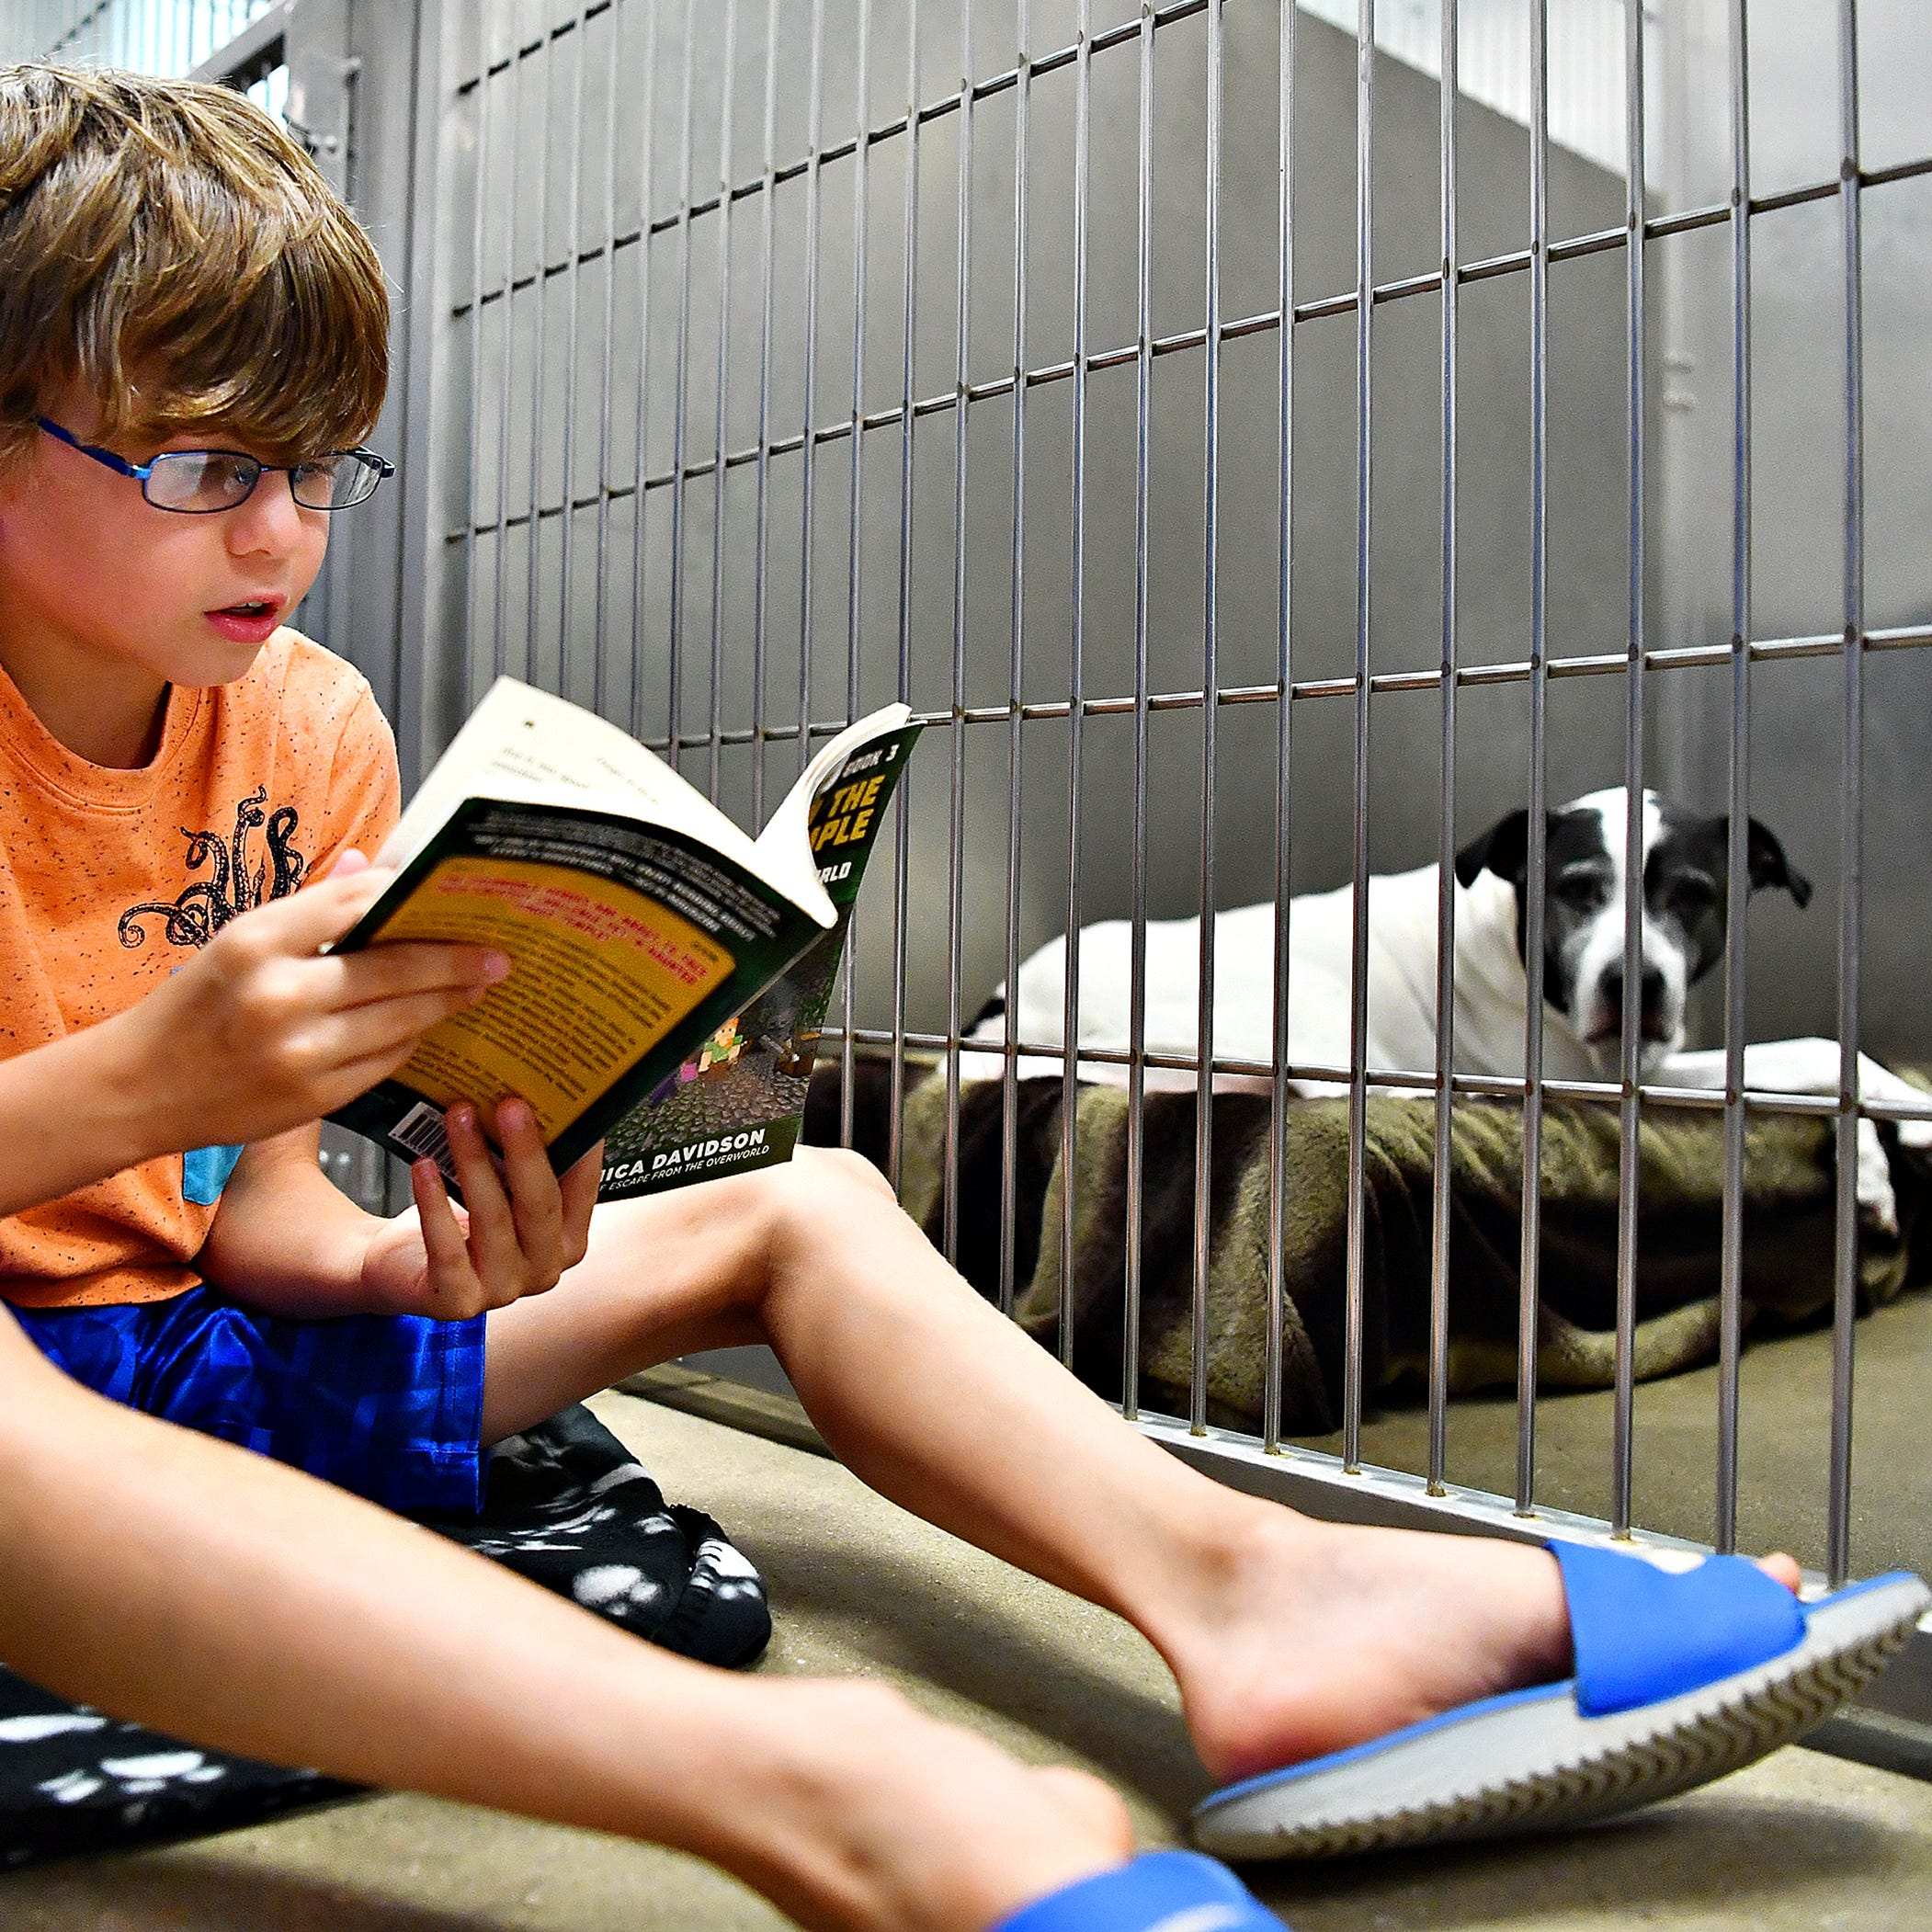 Logan Knaper, 10, of York Township, reads to Mia, an adoptable, female, black and white, 11-year old American Staffordshire Terrier during the Tales for Tails kickoff event at York County SPCA in Manchester Township, Friday, Aug. 17, 2018. The organization hopes to hold the event twice a month. For more information go to their website at: www.ycspca.org. Dawn J. Sagert